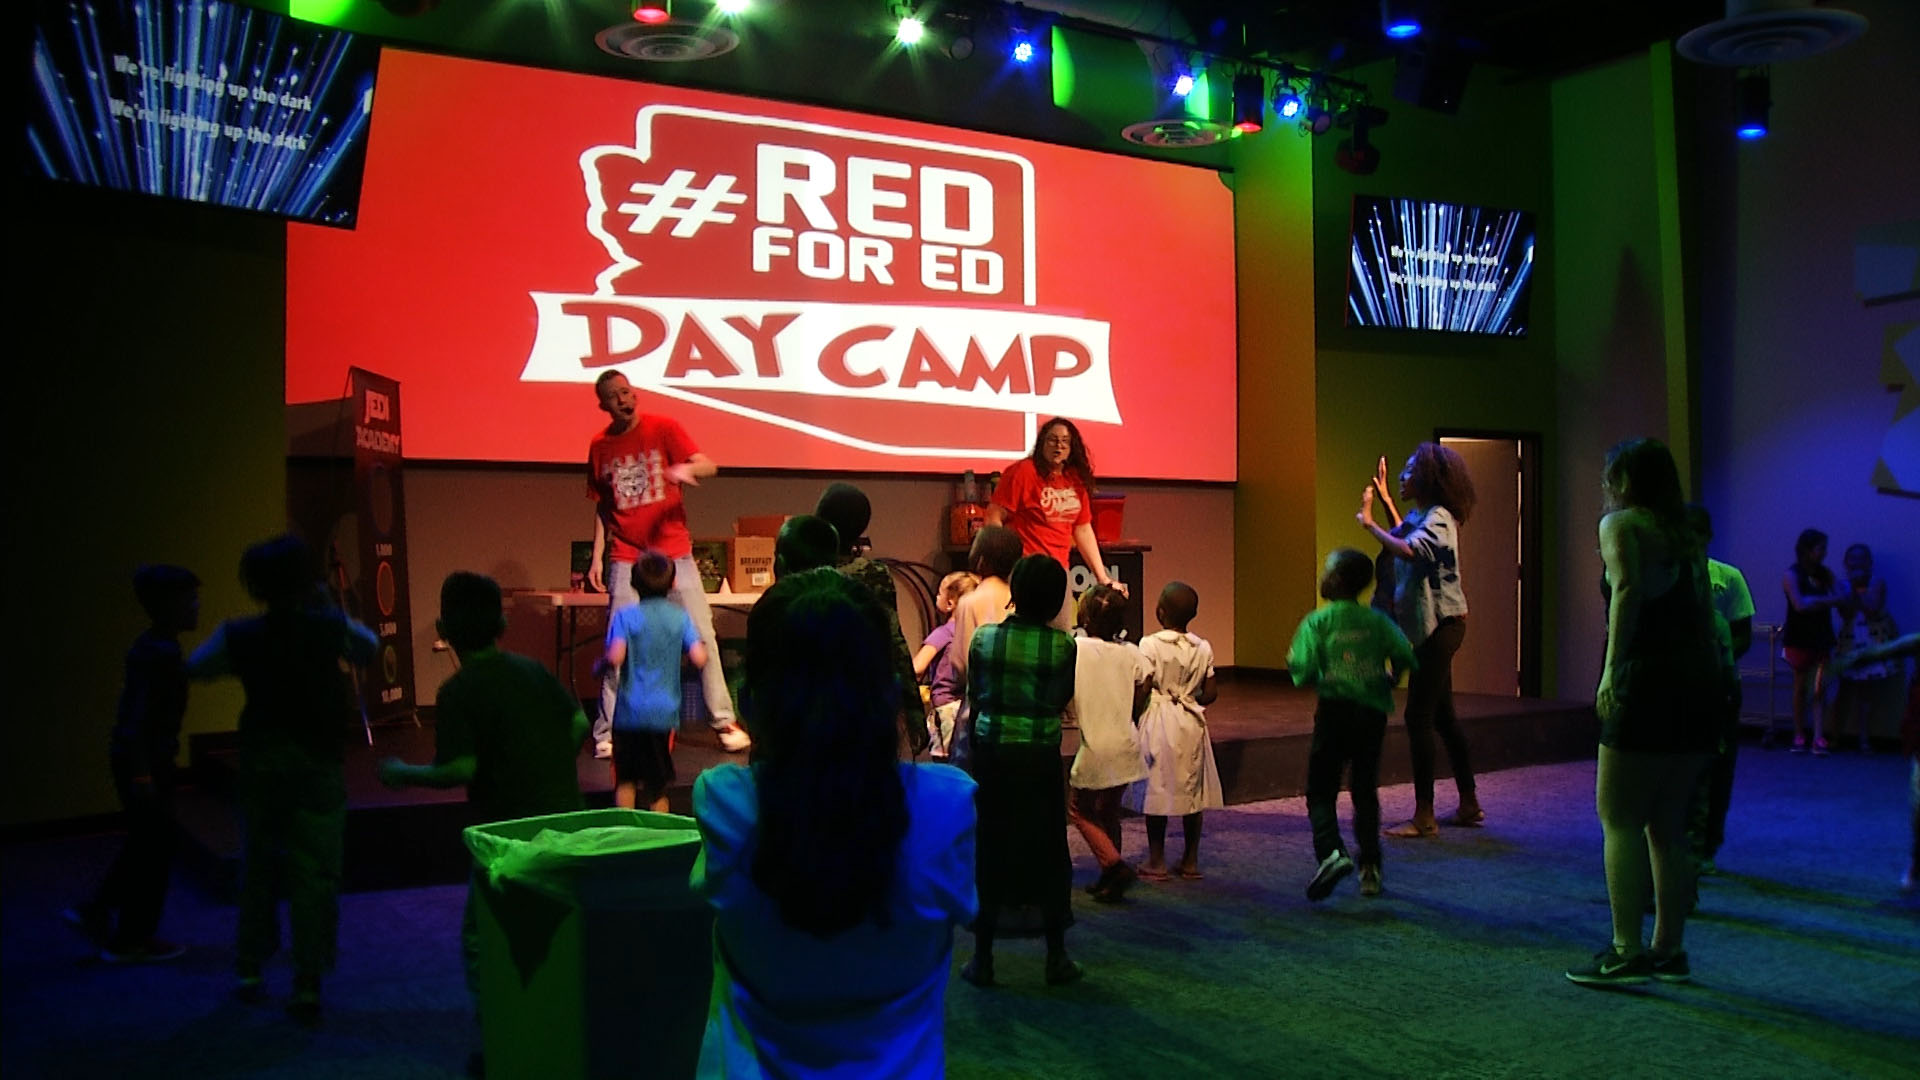 Red For Ed Day Camp at Victory Worship Center